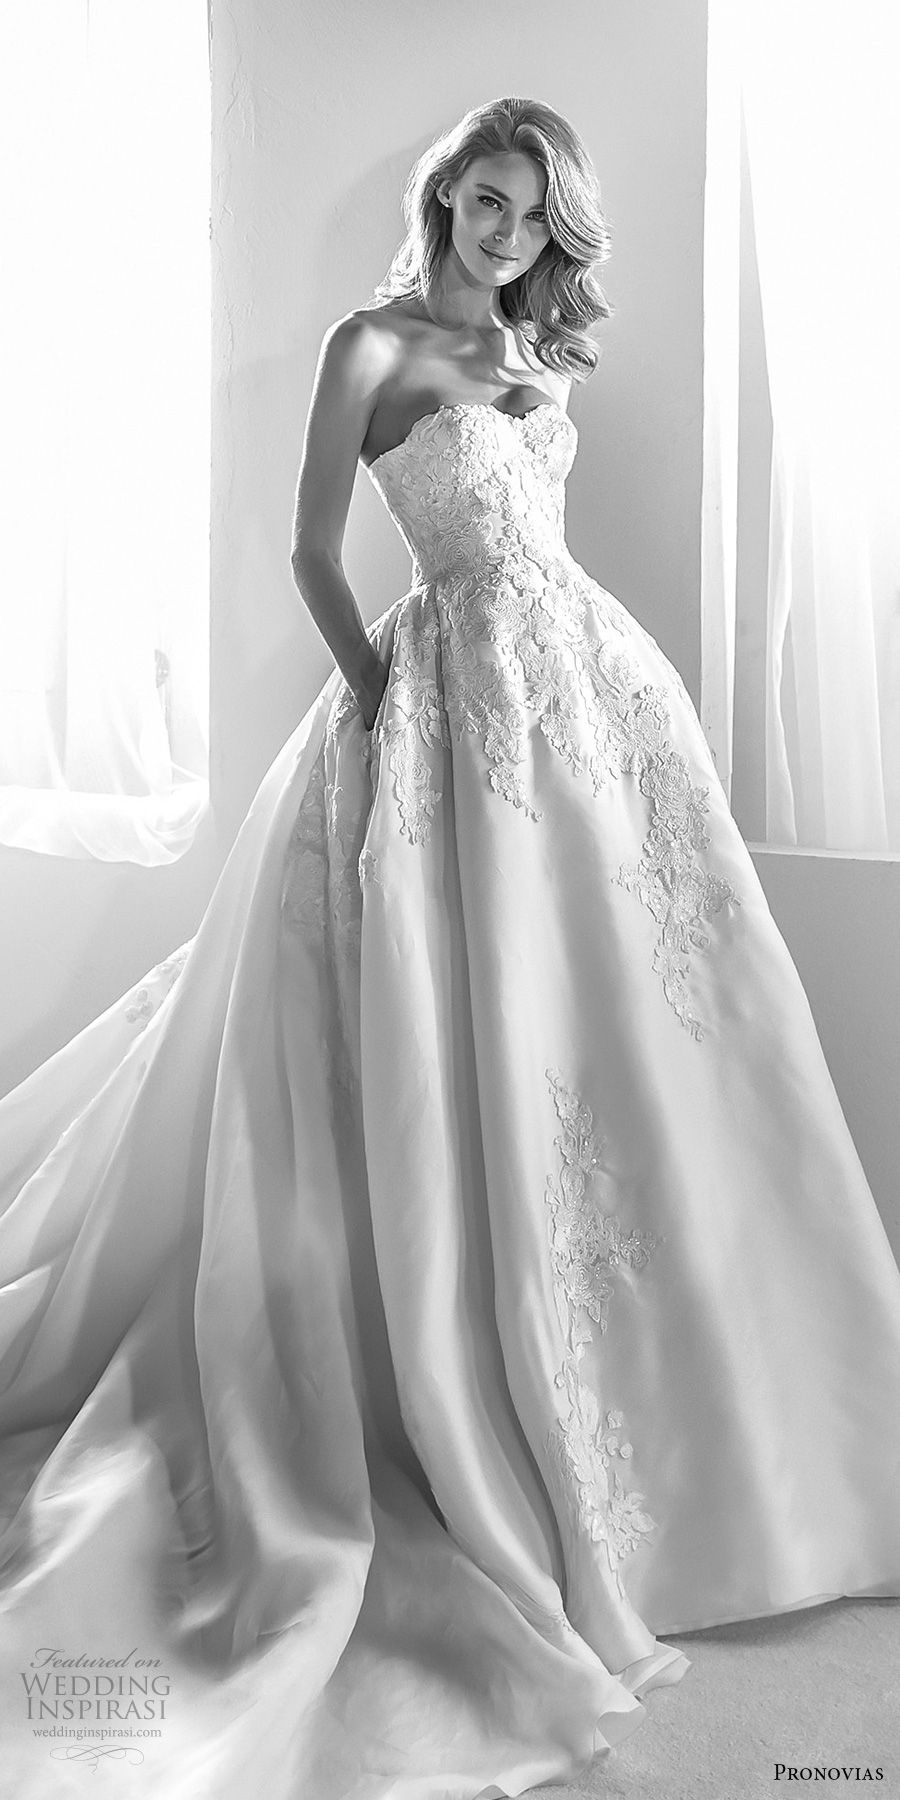 atelier pronovias 2018 bridal strapless semi sweetheart neckline heavily embellished bodice princess ball gown wedding dress with pockets royal train (20) mv